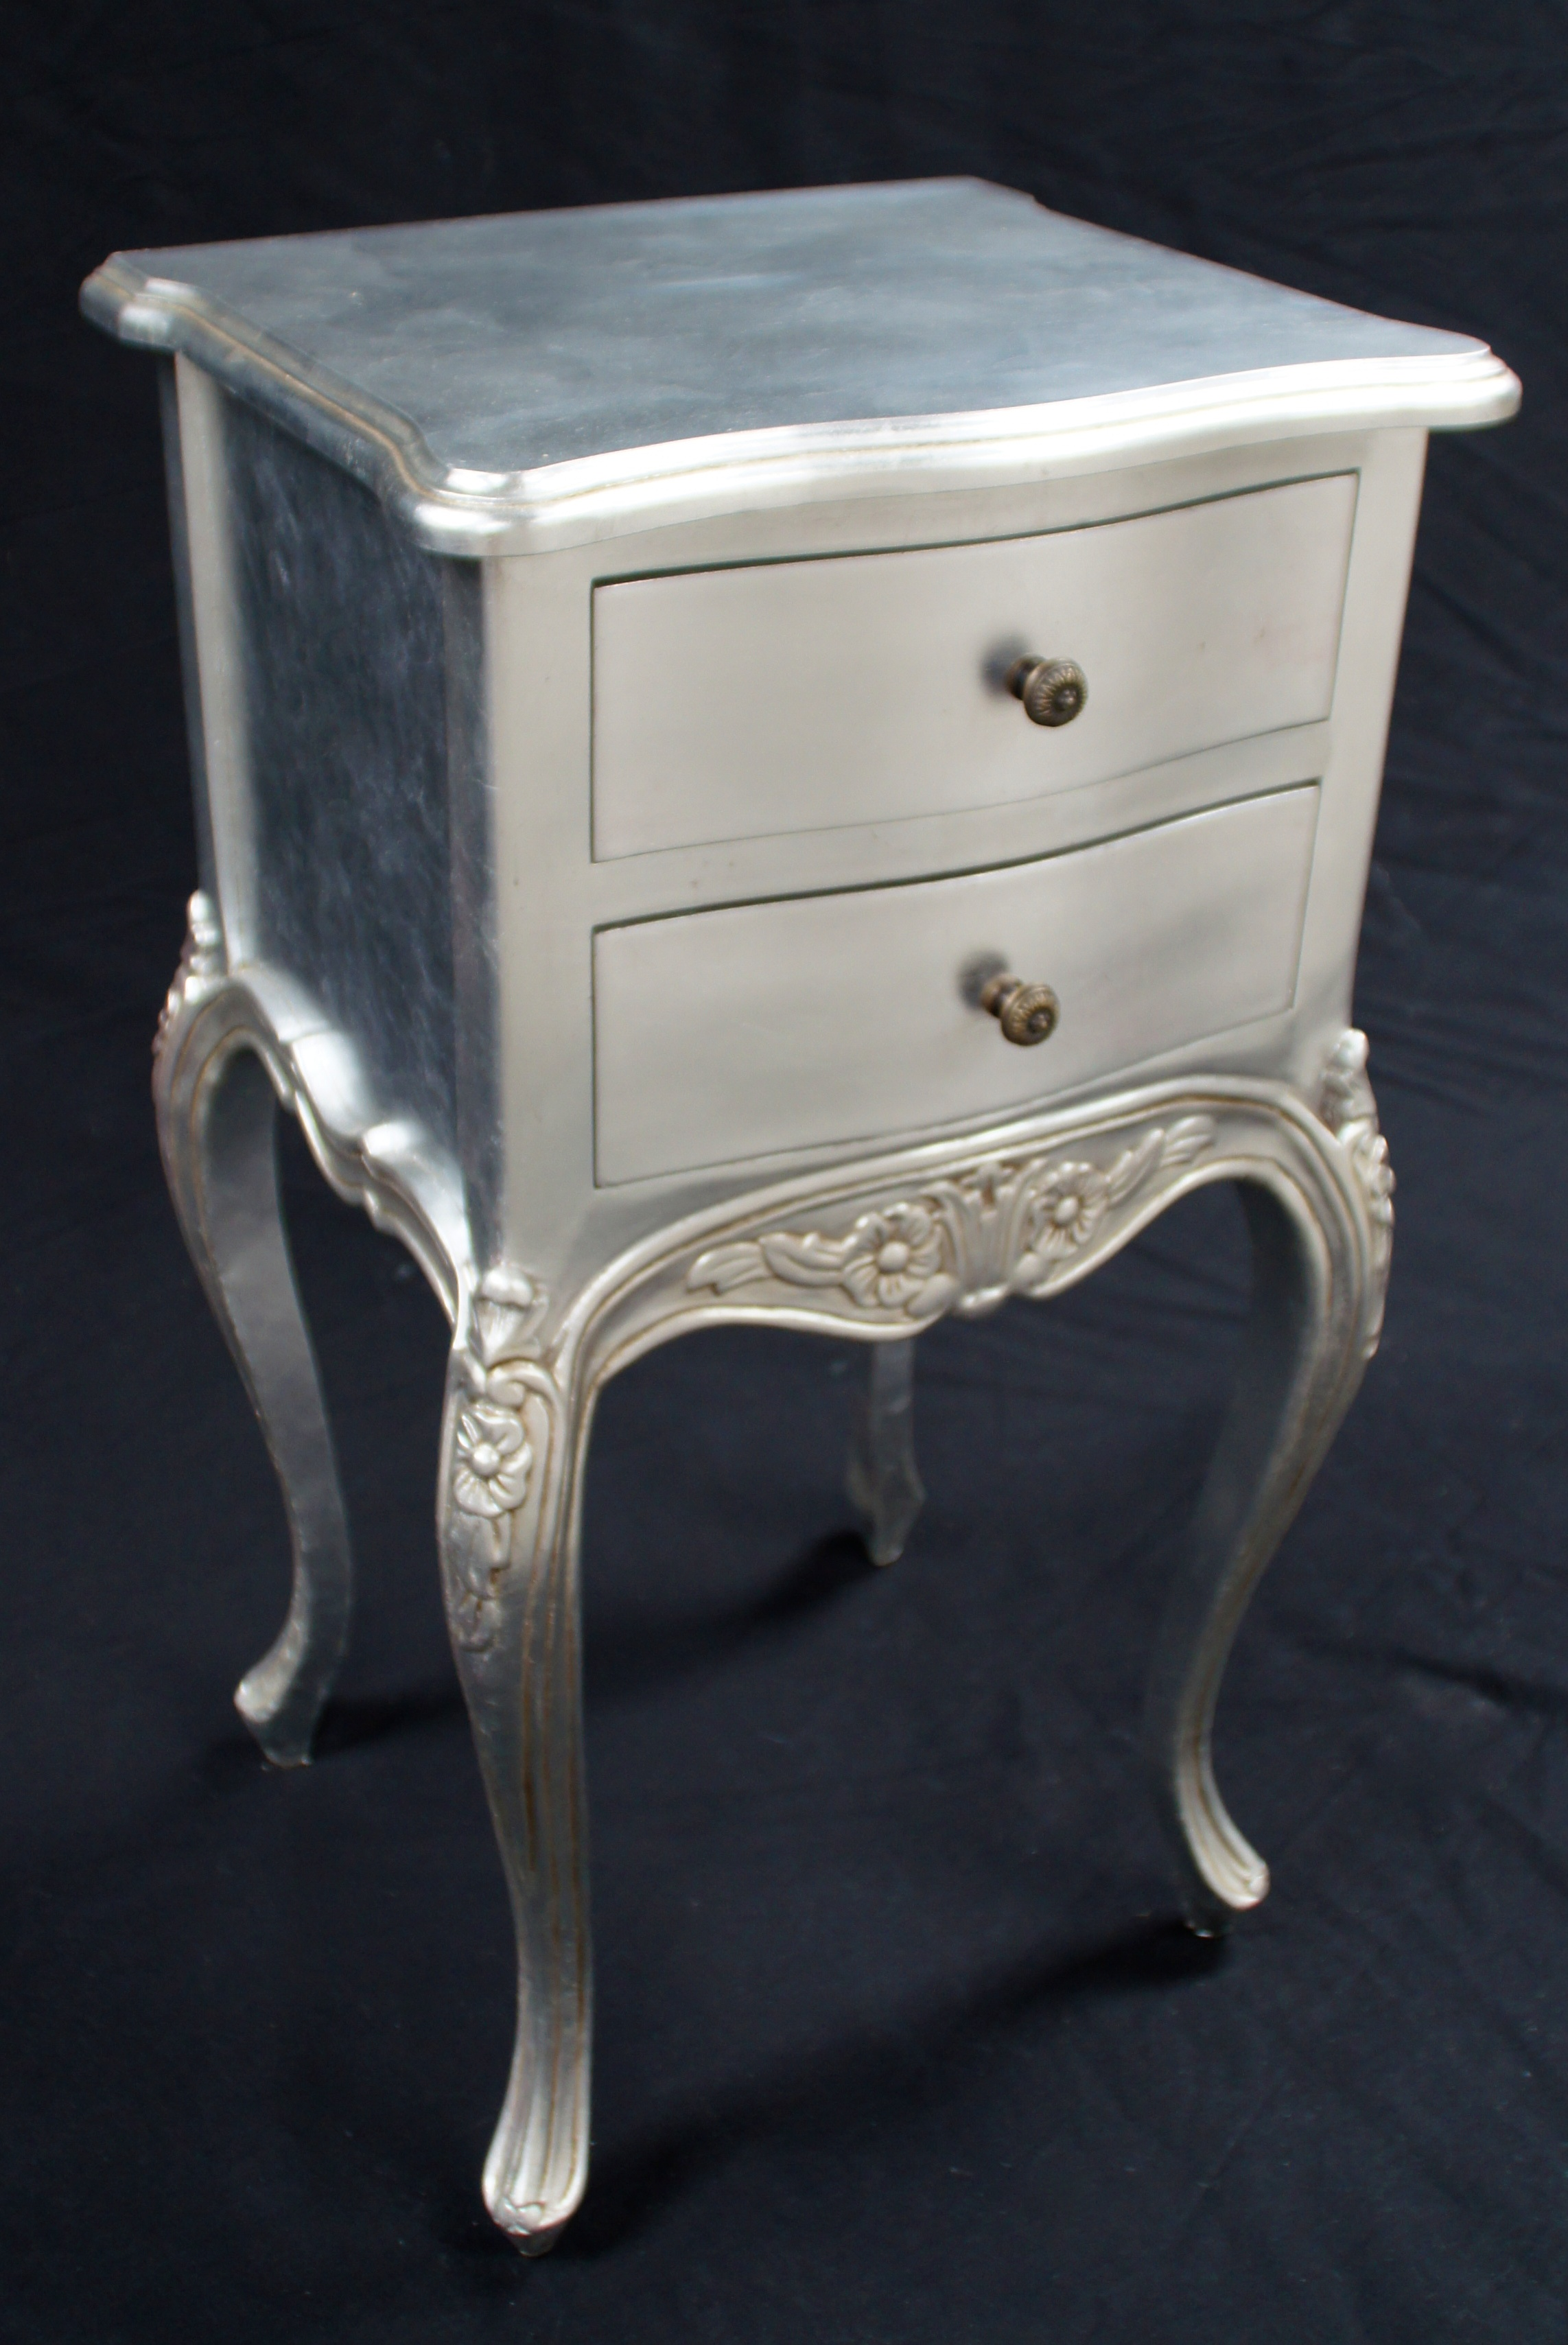 small bedroom occasional chair cover rental agreement a beautiful parisian ornate two drawer lamp side table or bedside cabinet shown in silver leaf ...